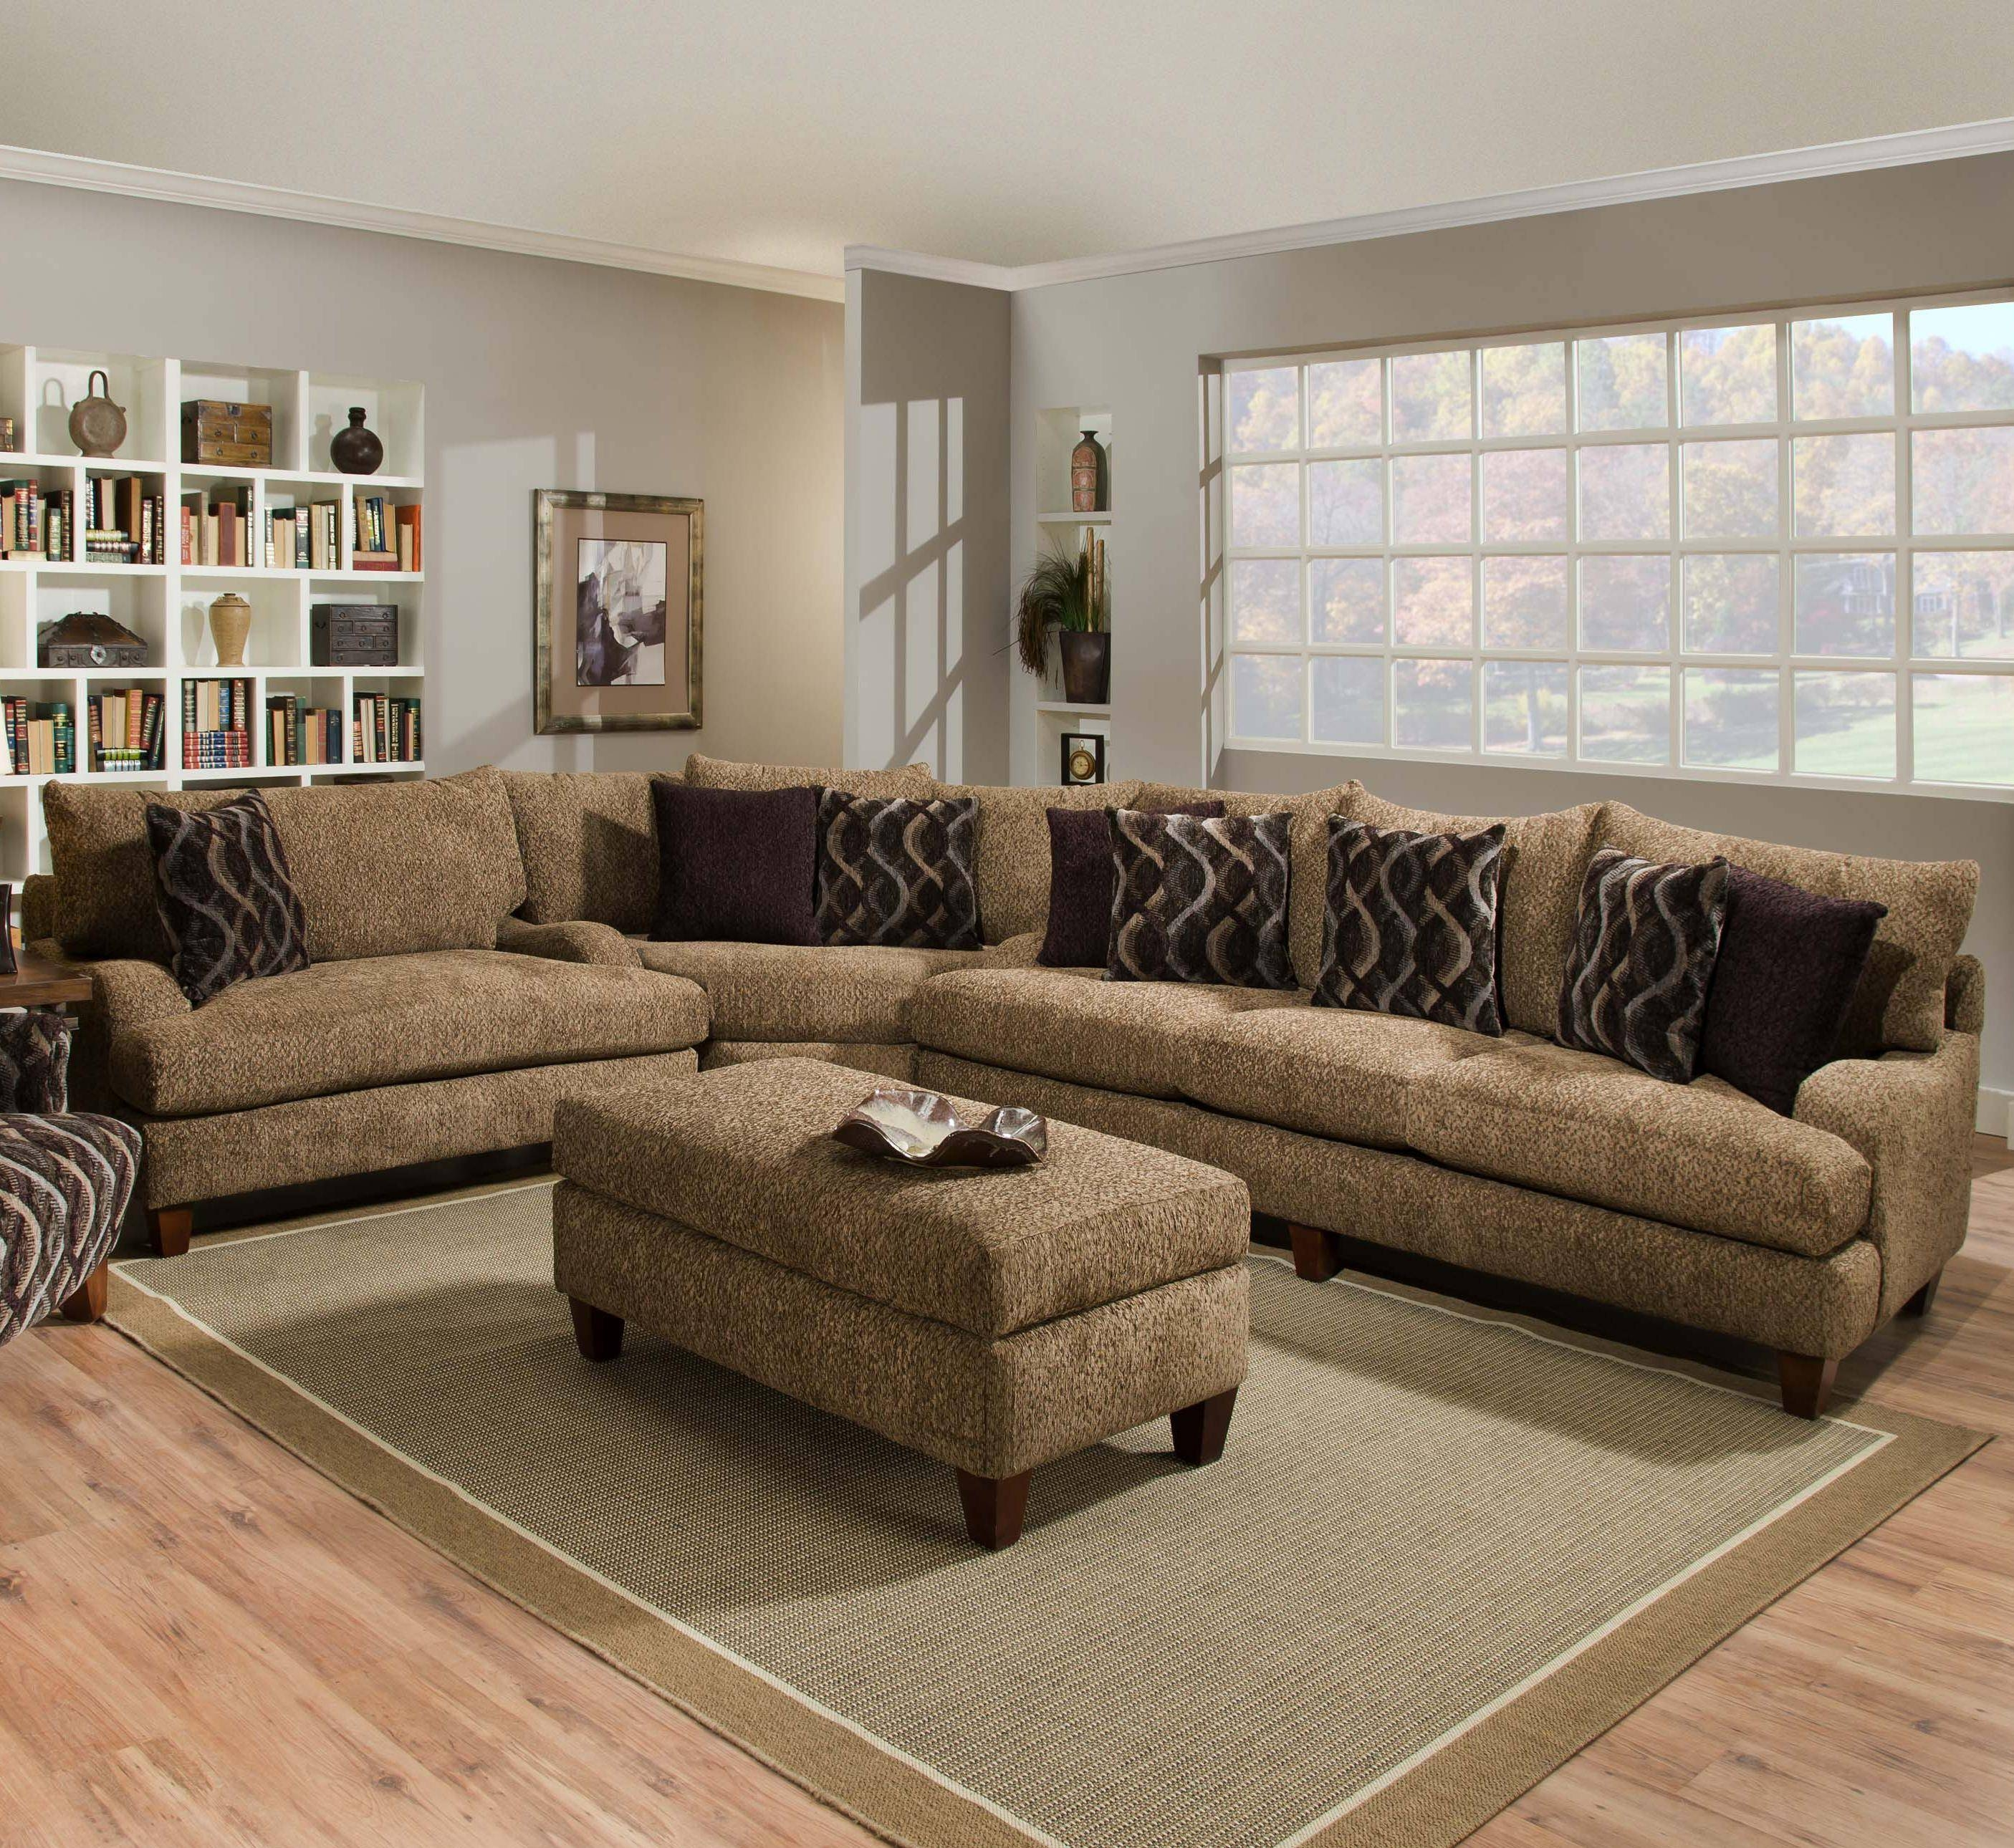 Wonderful Traditional Sectional Sofas Living Room Furniture 41 On regarding C Shaped Sectional Sofa (Image 29 of 30)